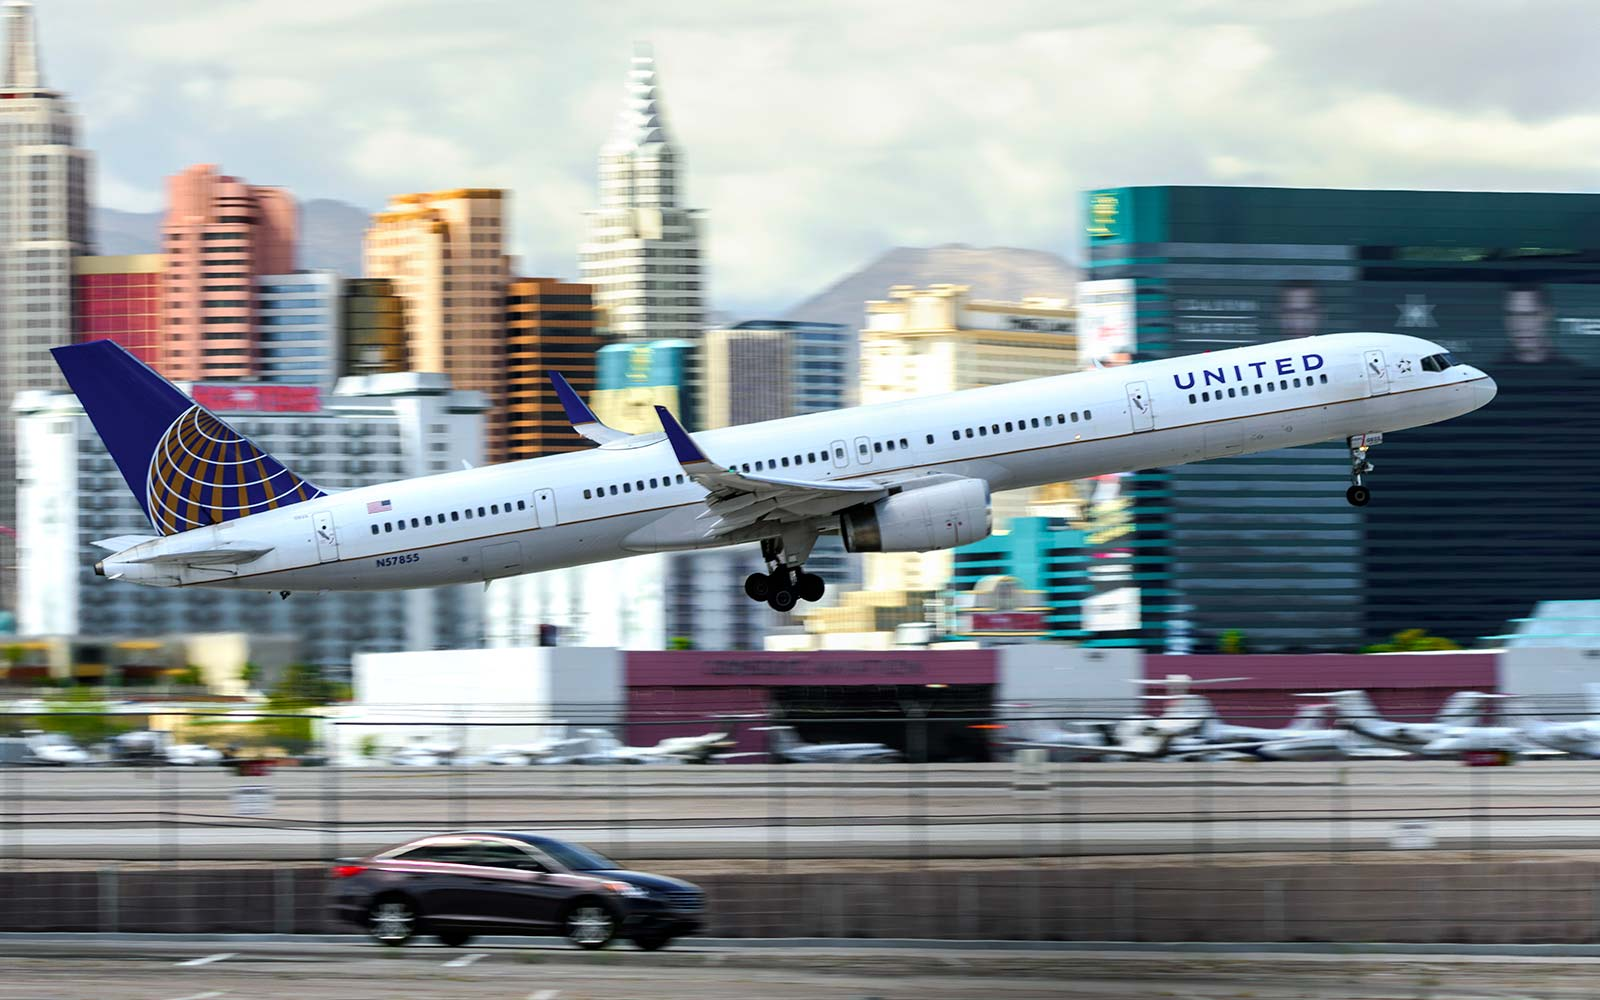 United Airlines Issues Travel Waiver for Las Vegas After Shooting